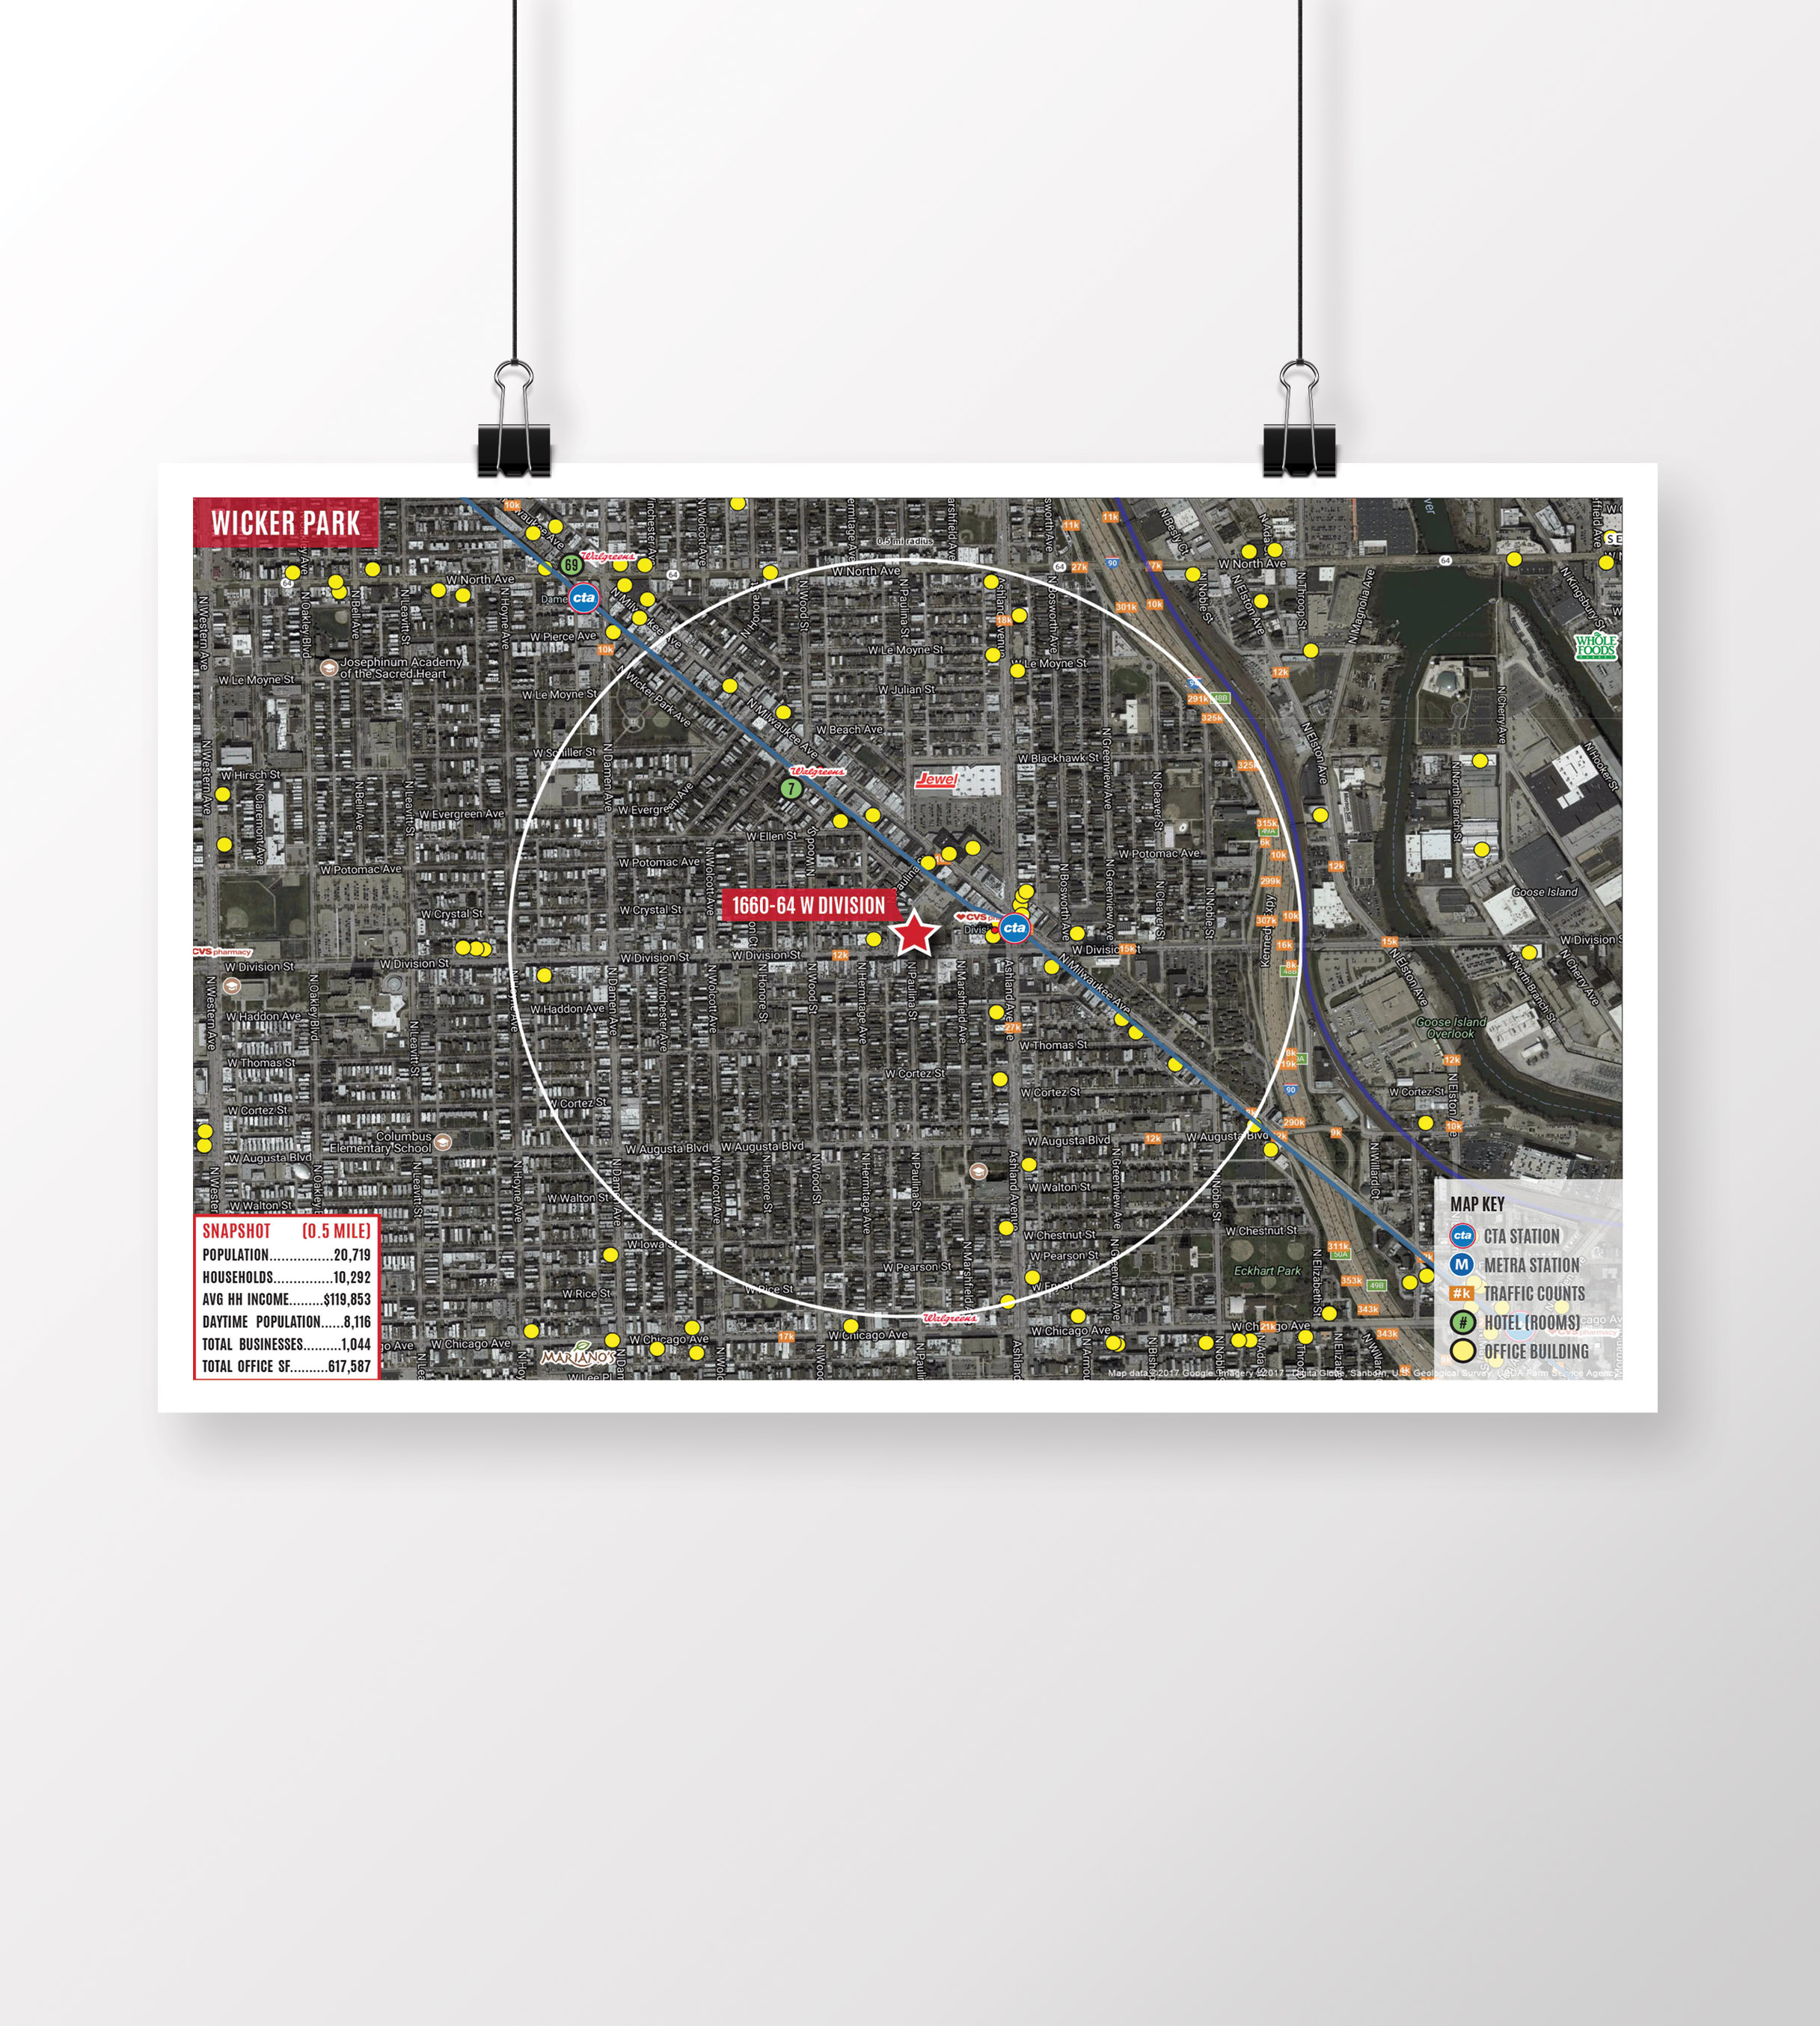 Free Poster Mockup Psd_Target-wicker-park-map.jpg